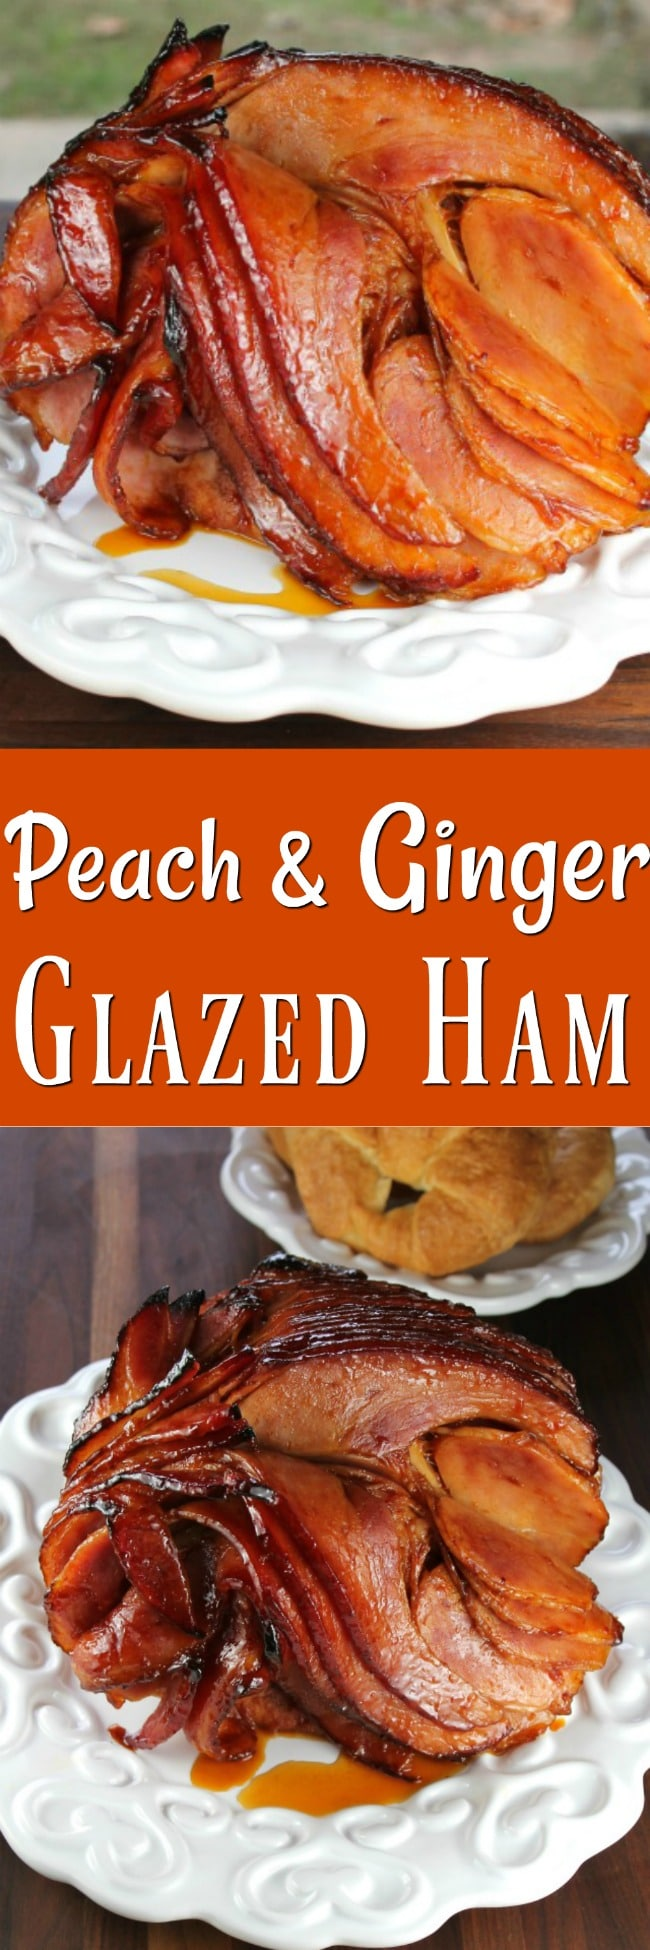 Peach-and-Ginger-Glazed-Ham-Photo-Collage